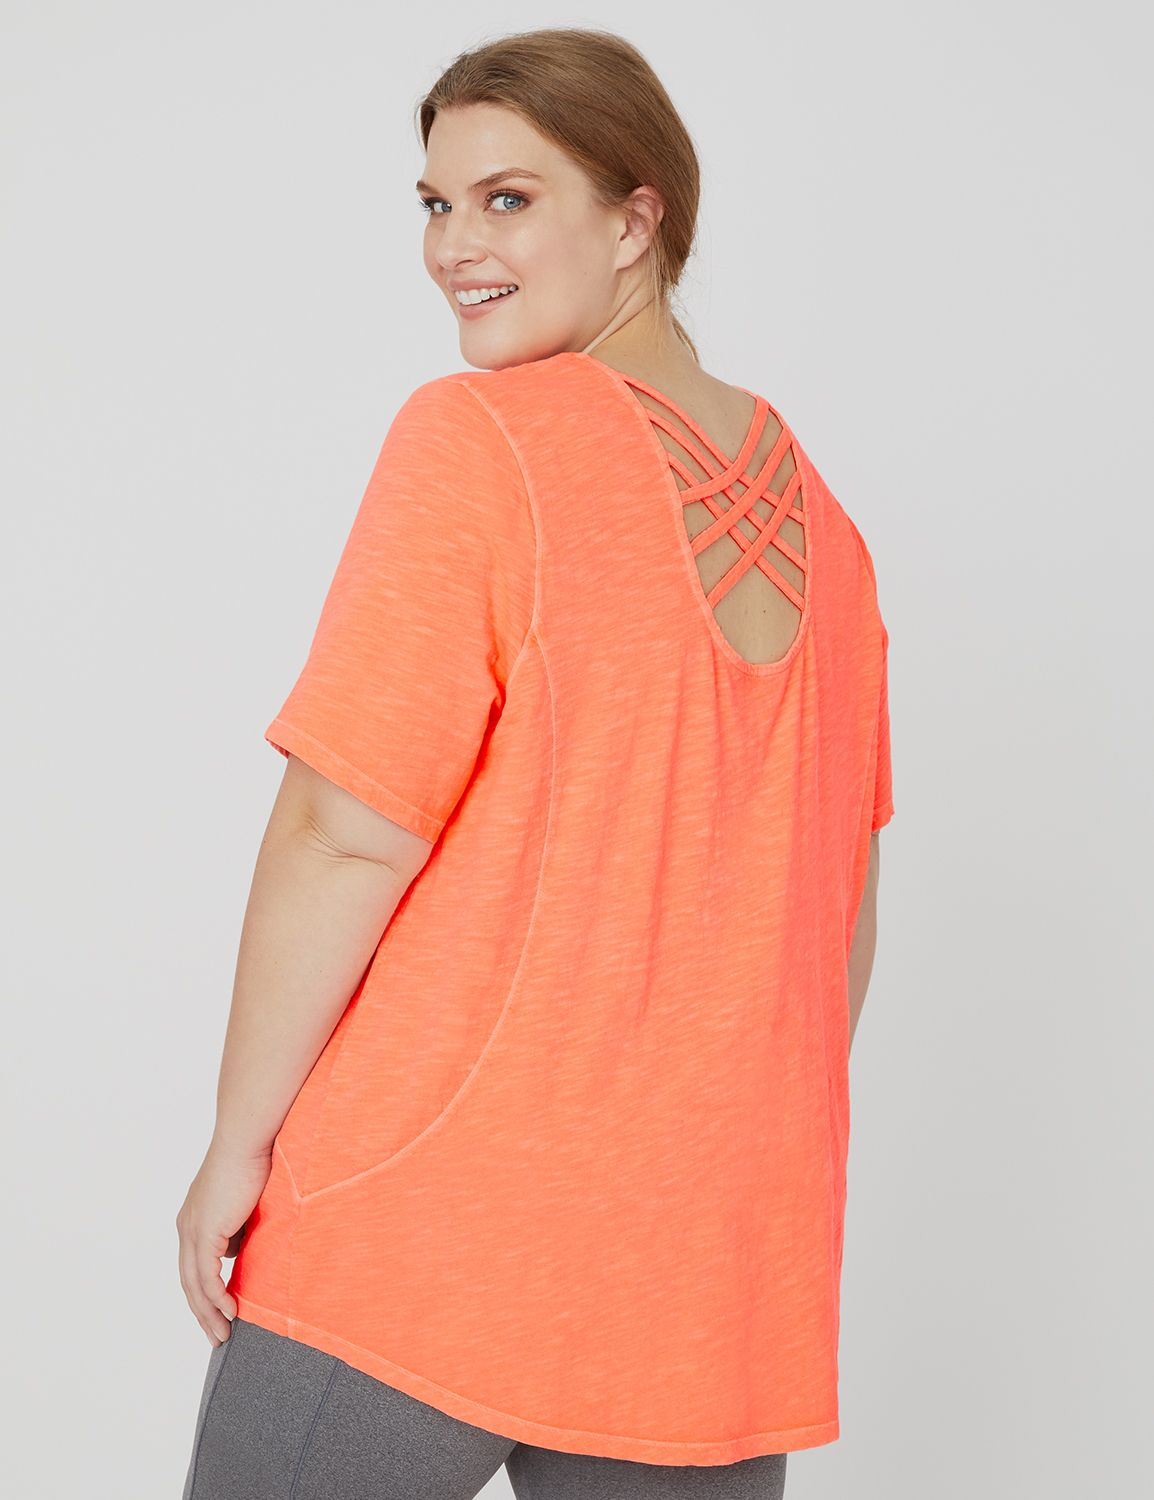 Short-Sleeve Crisscross Active Tee 1088551 SS Criss-Cross Back Top MP-300097726